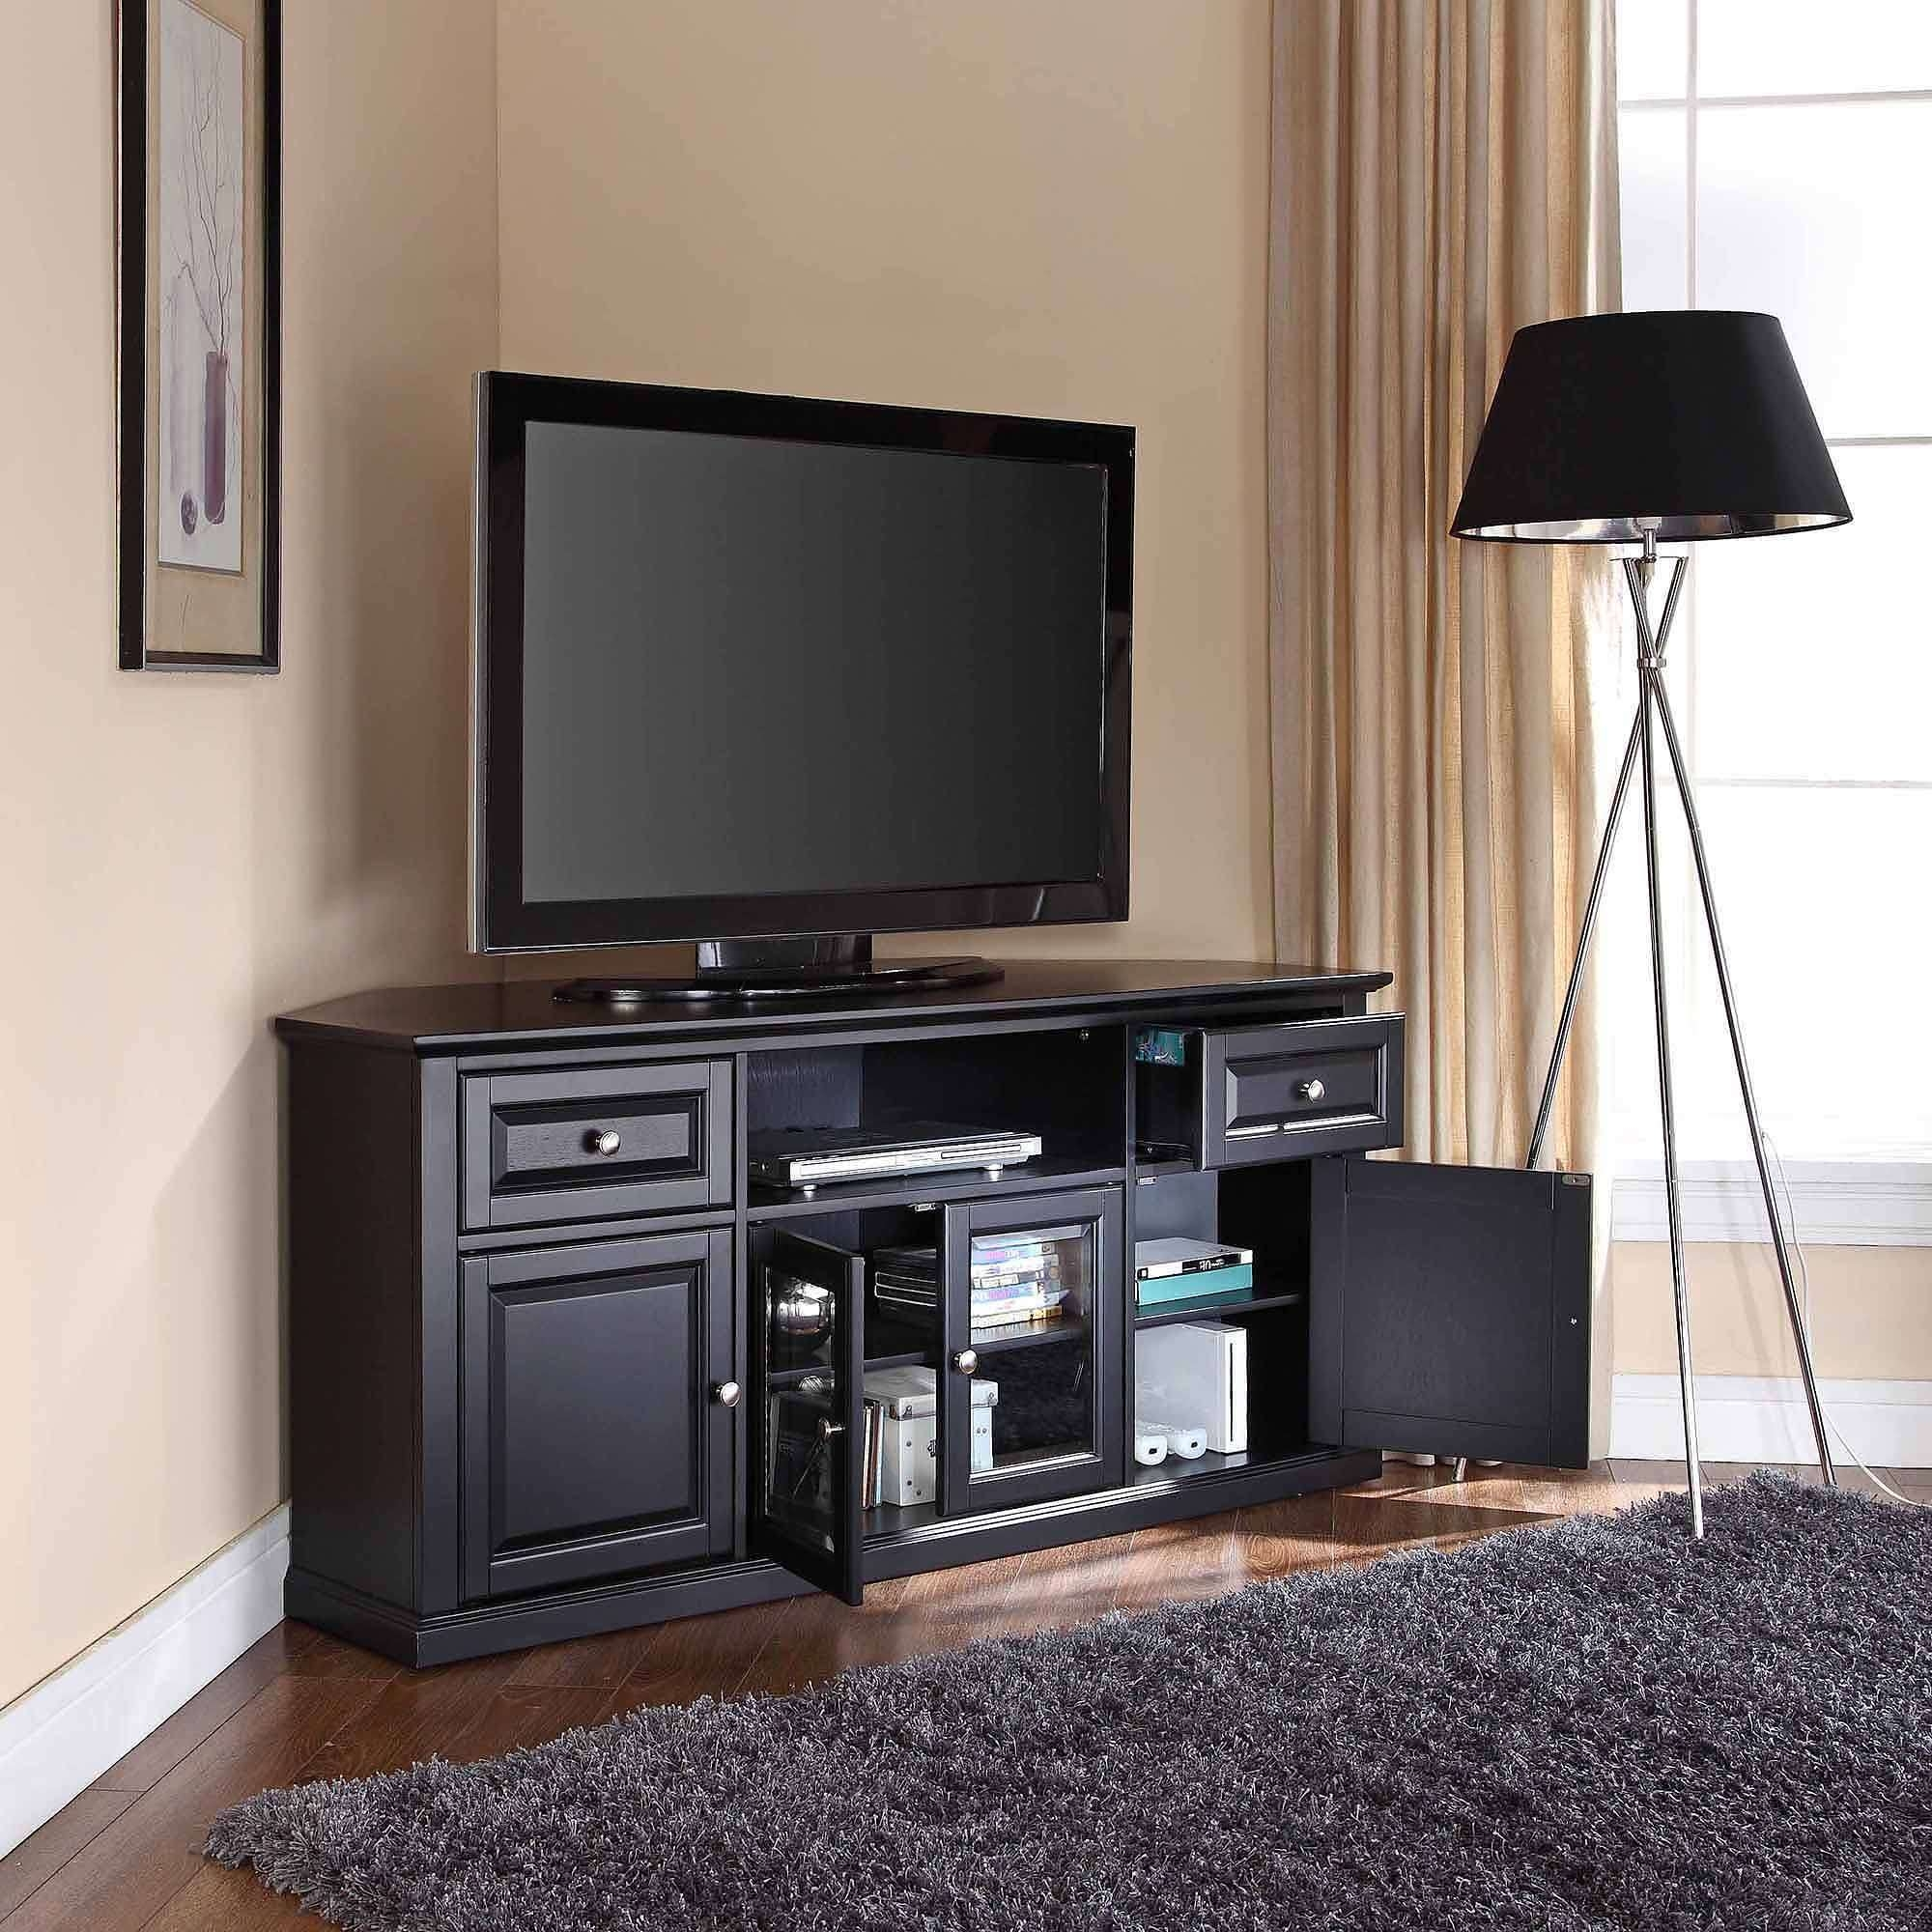 "Crosley Furniture Corner Tv Stand For Tvs Up To 60"" – Walmart With Regard To Modern Tv Stands For 60 Inch Tvs (View 4 of 15)"